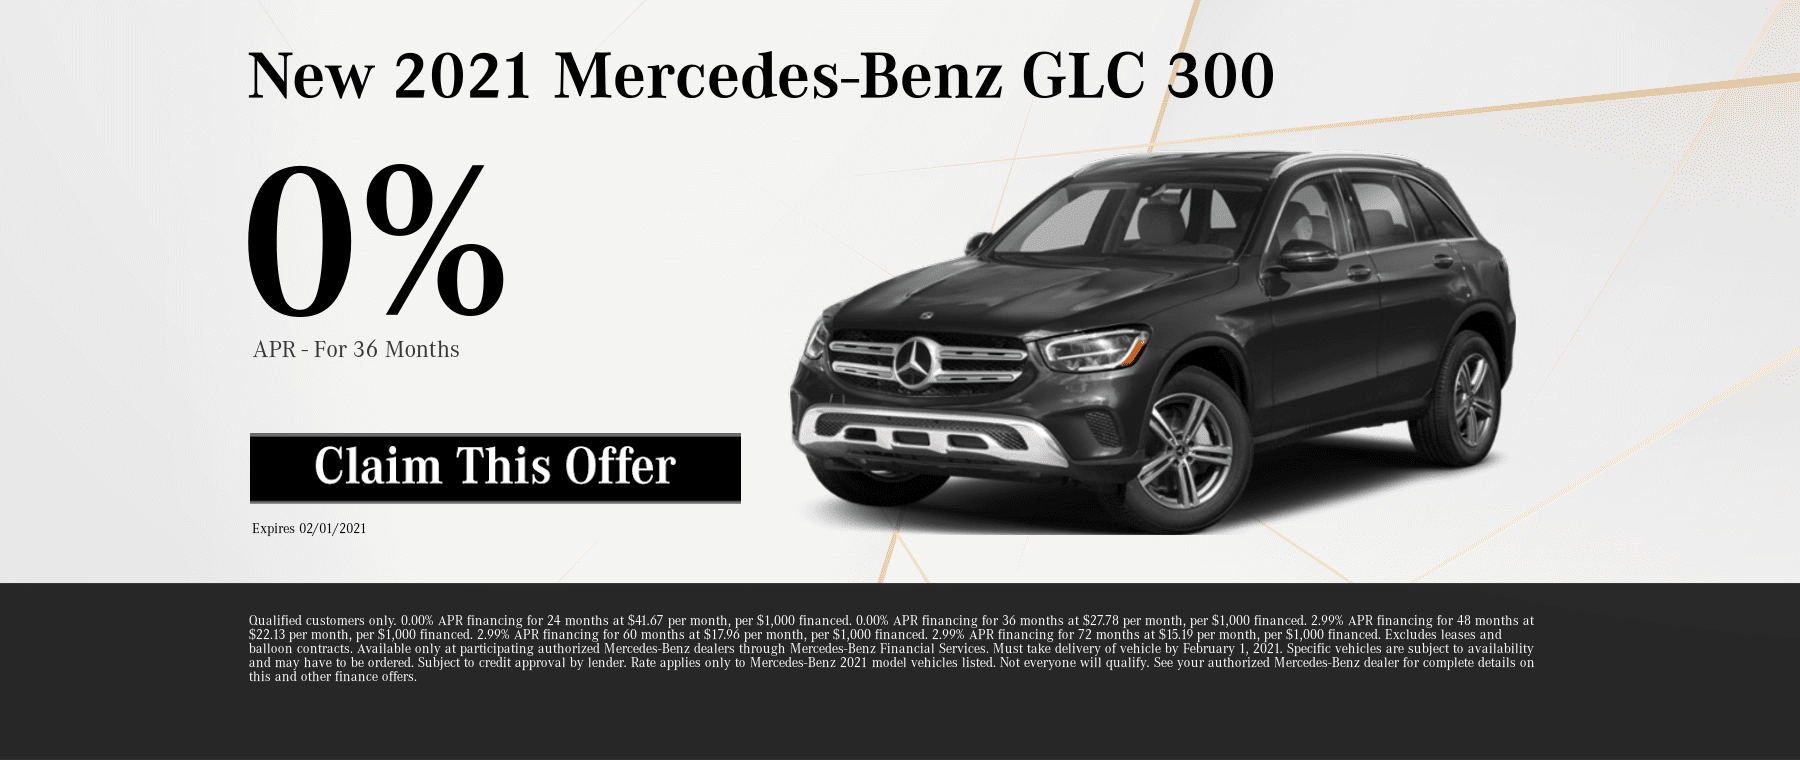 2021-Mercedes-Benz-GLC 300-SUV-59